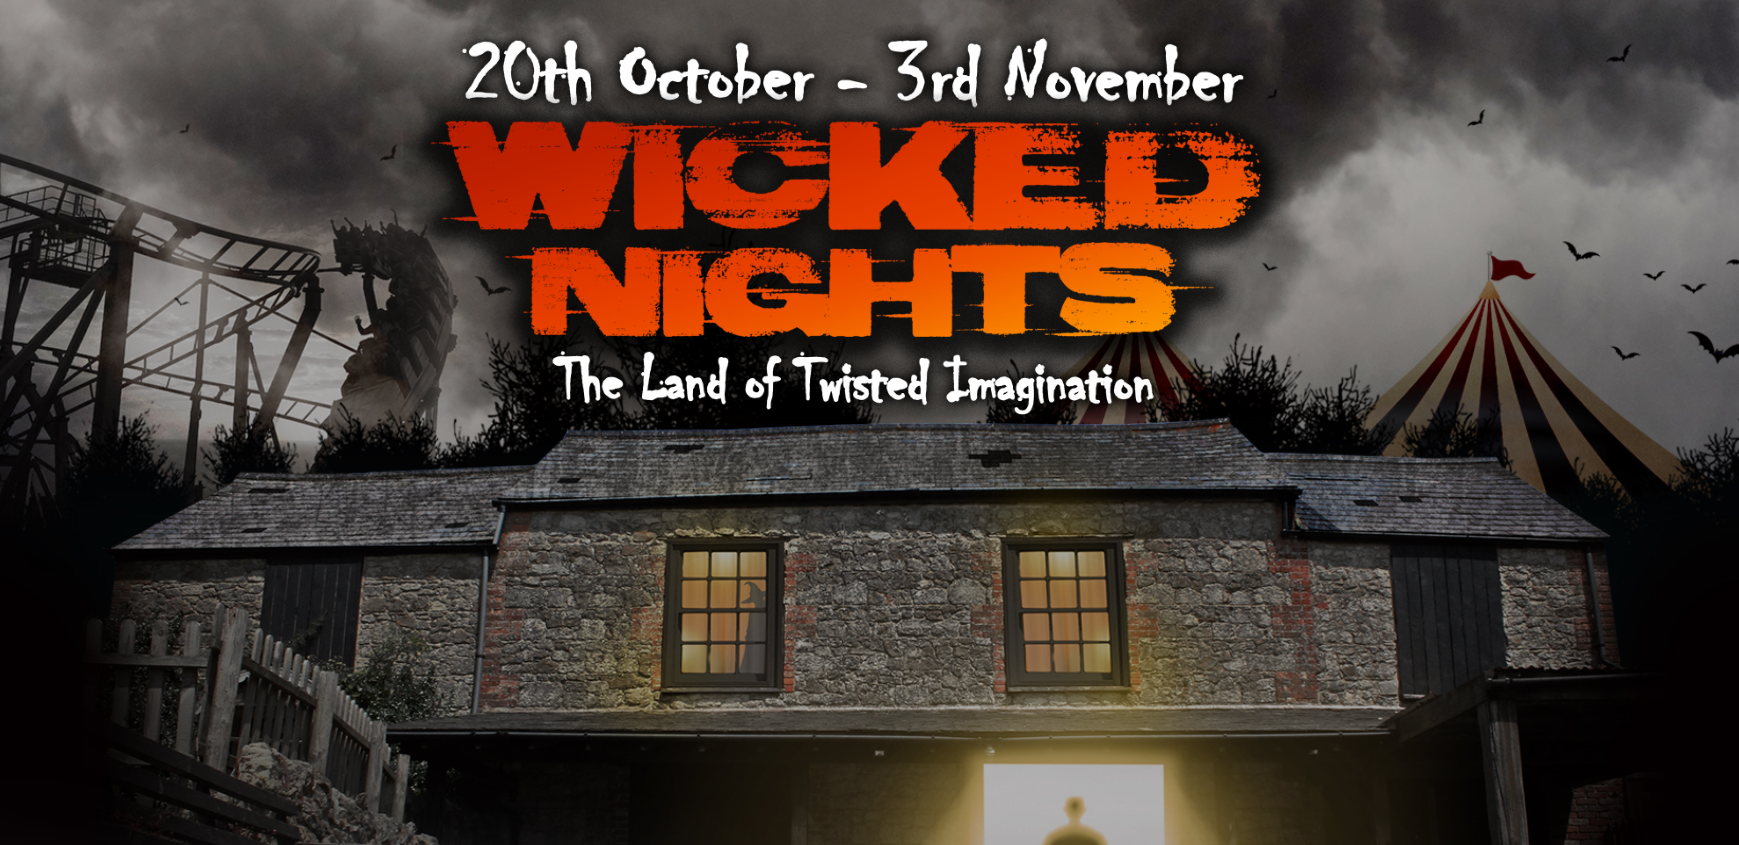 Wicked night header image logo and dates.PNG